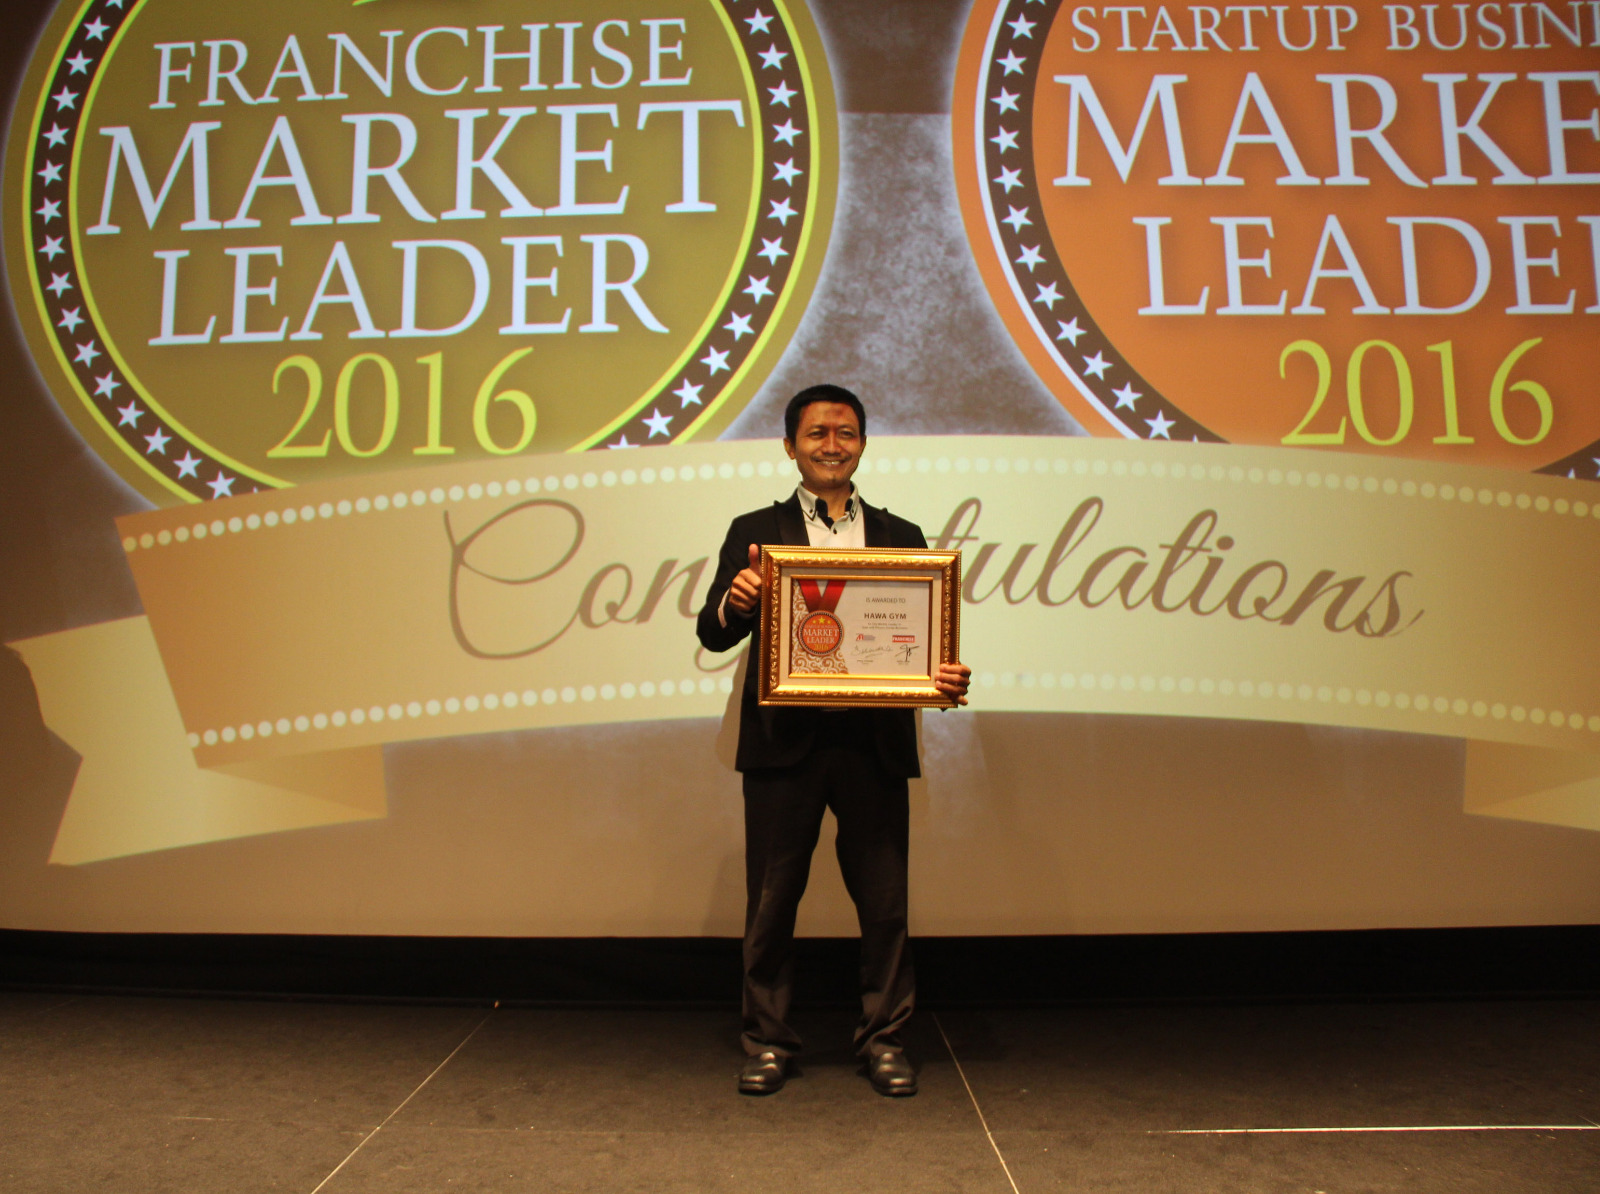 franchise-market-leader-start-up-bussiness-market-leader-award-2016